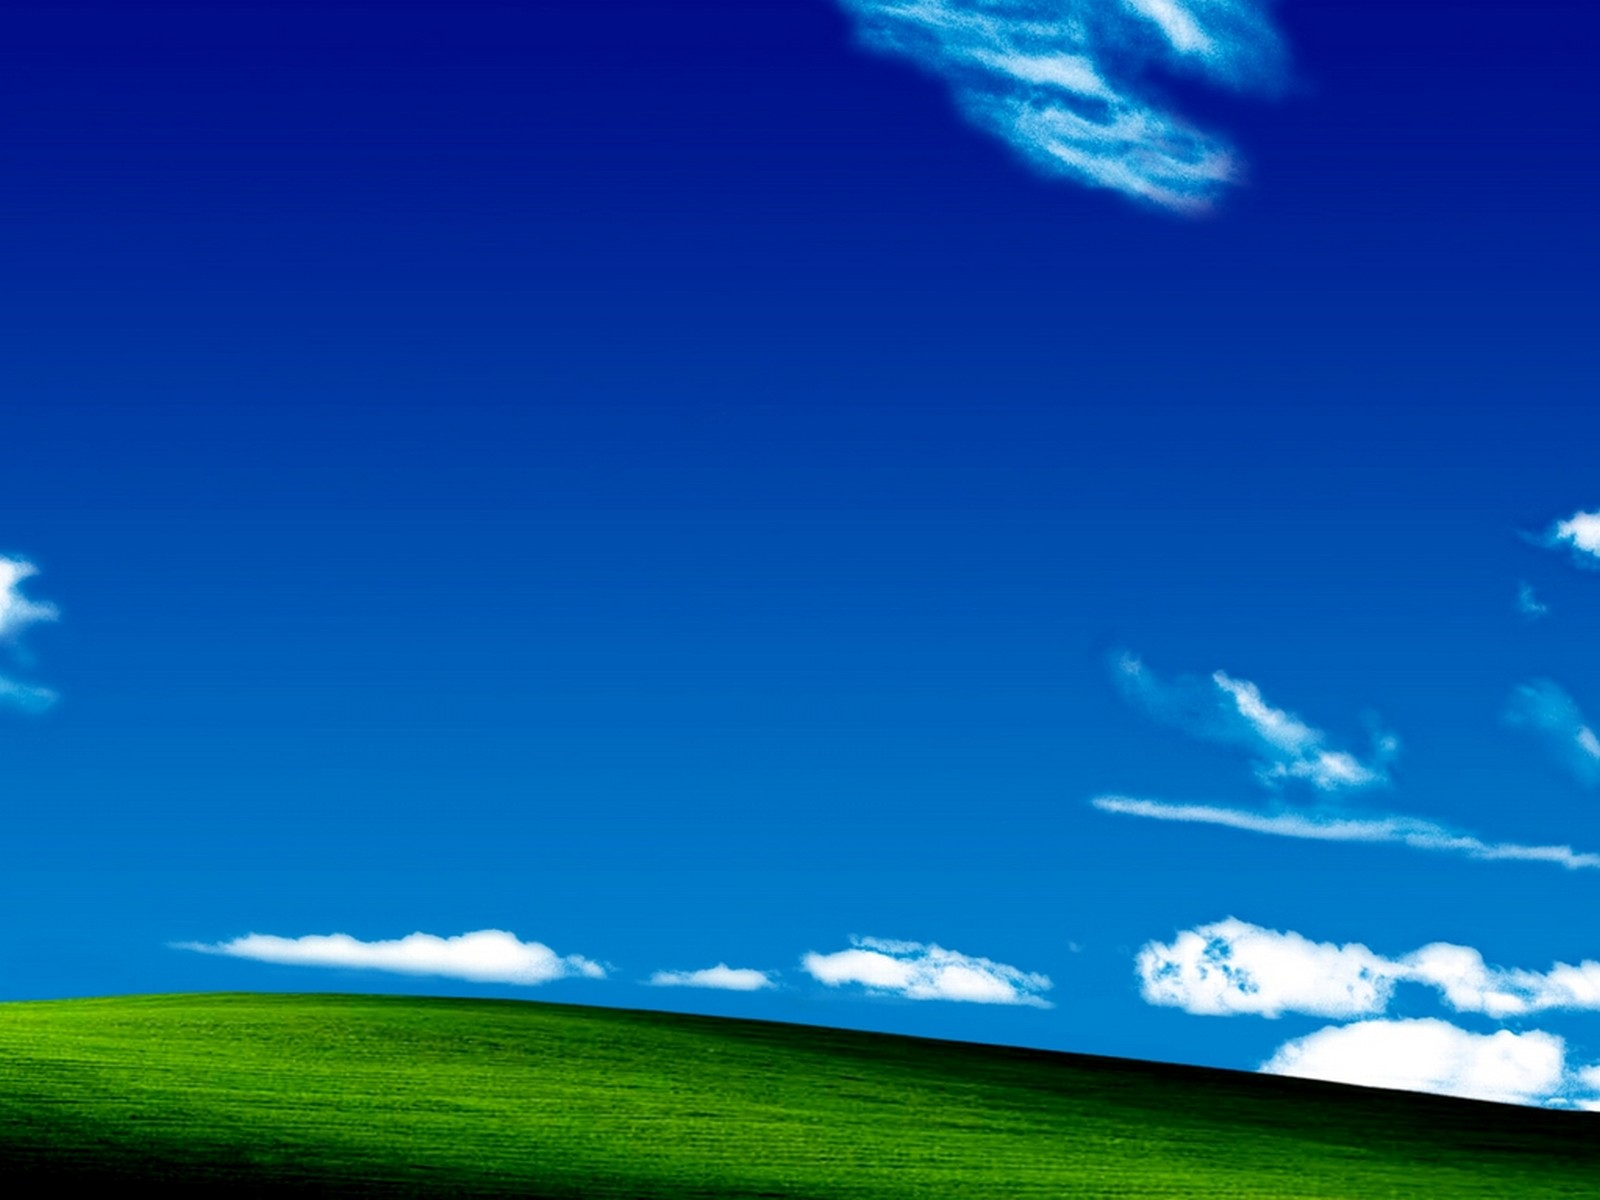 Windows Bliss Wallpaper images in Collection Page